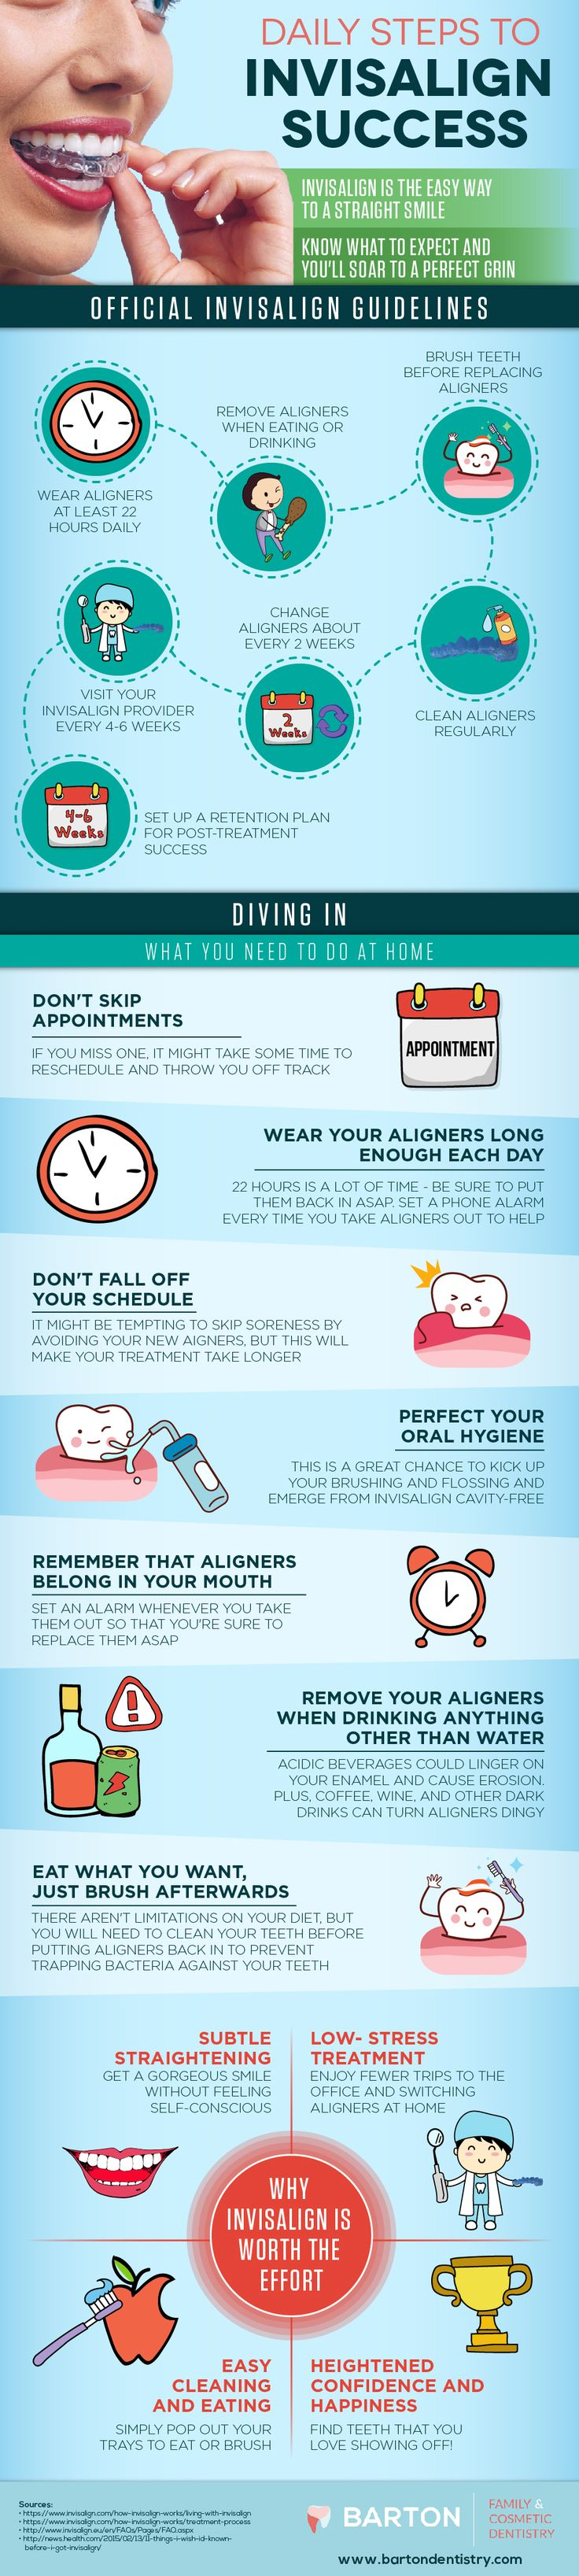 Make your Invisalign process work for you. Adult braces don't have to be frustrating - adopt these daily practices for a comfortable experience.